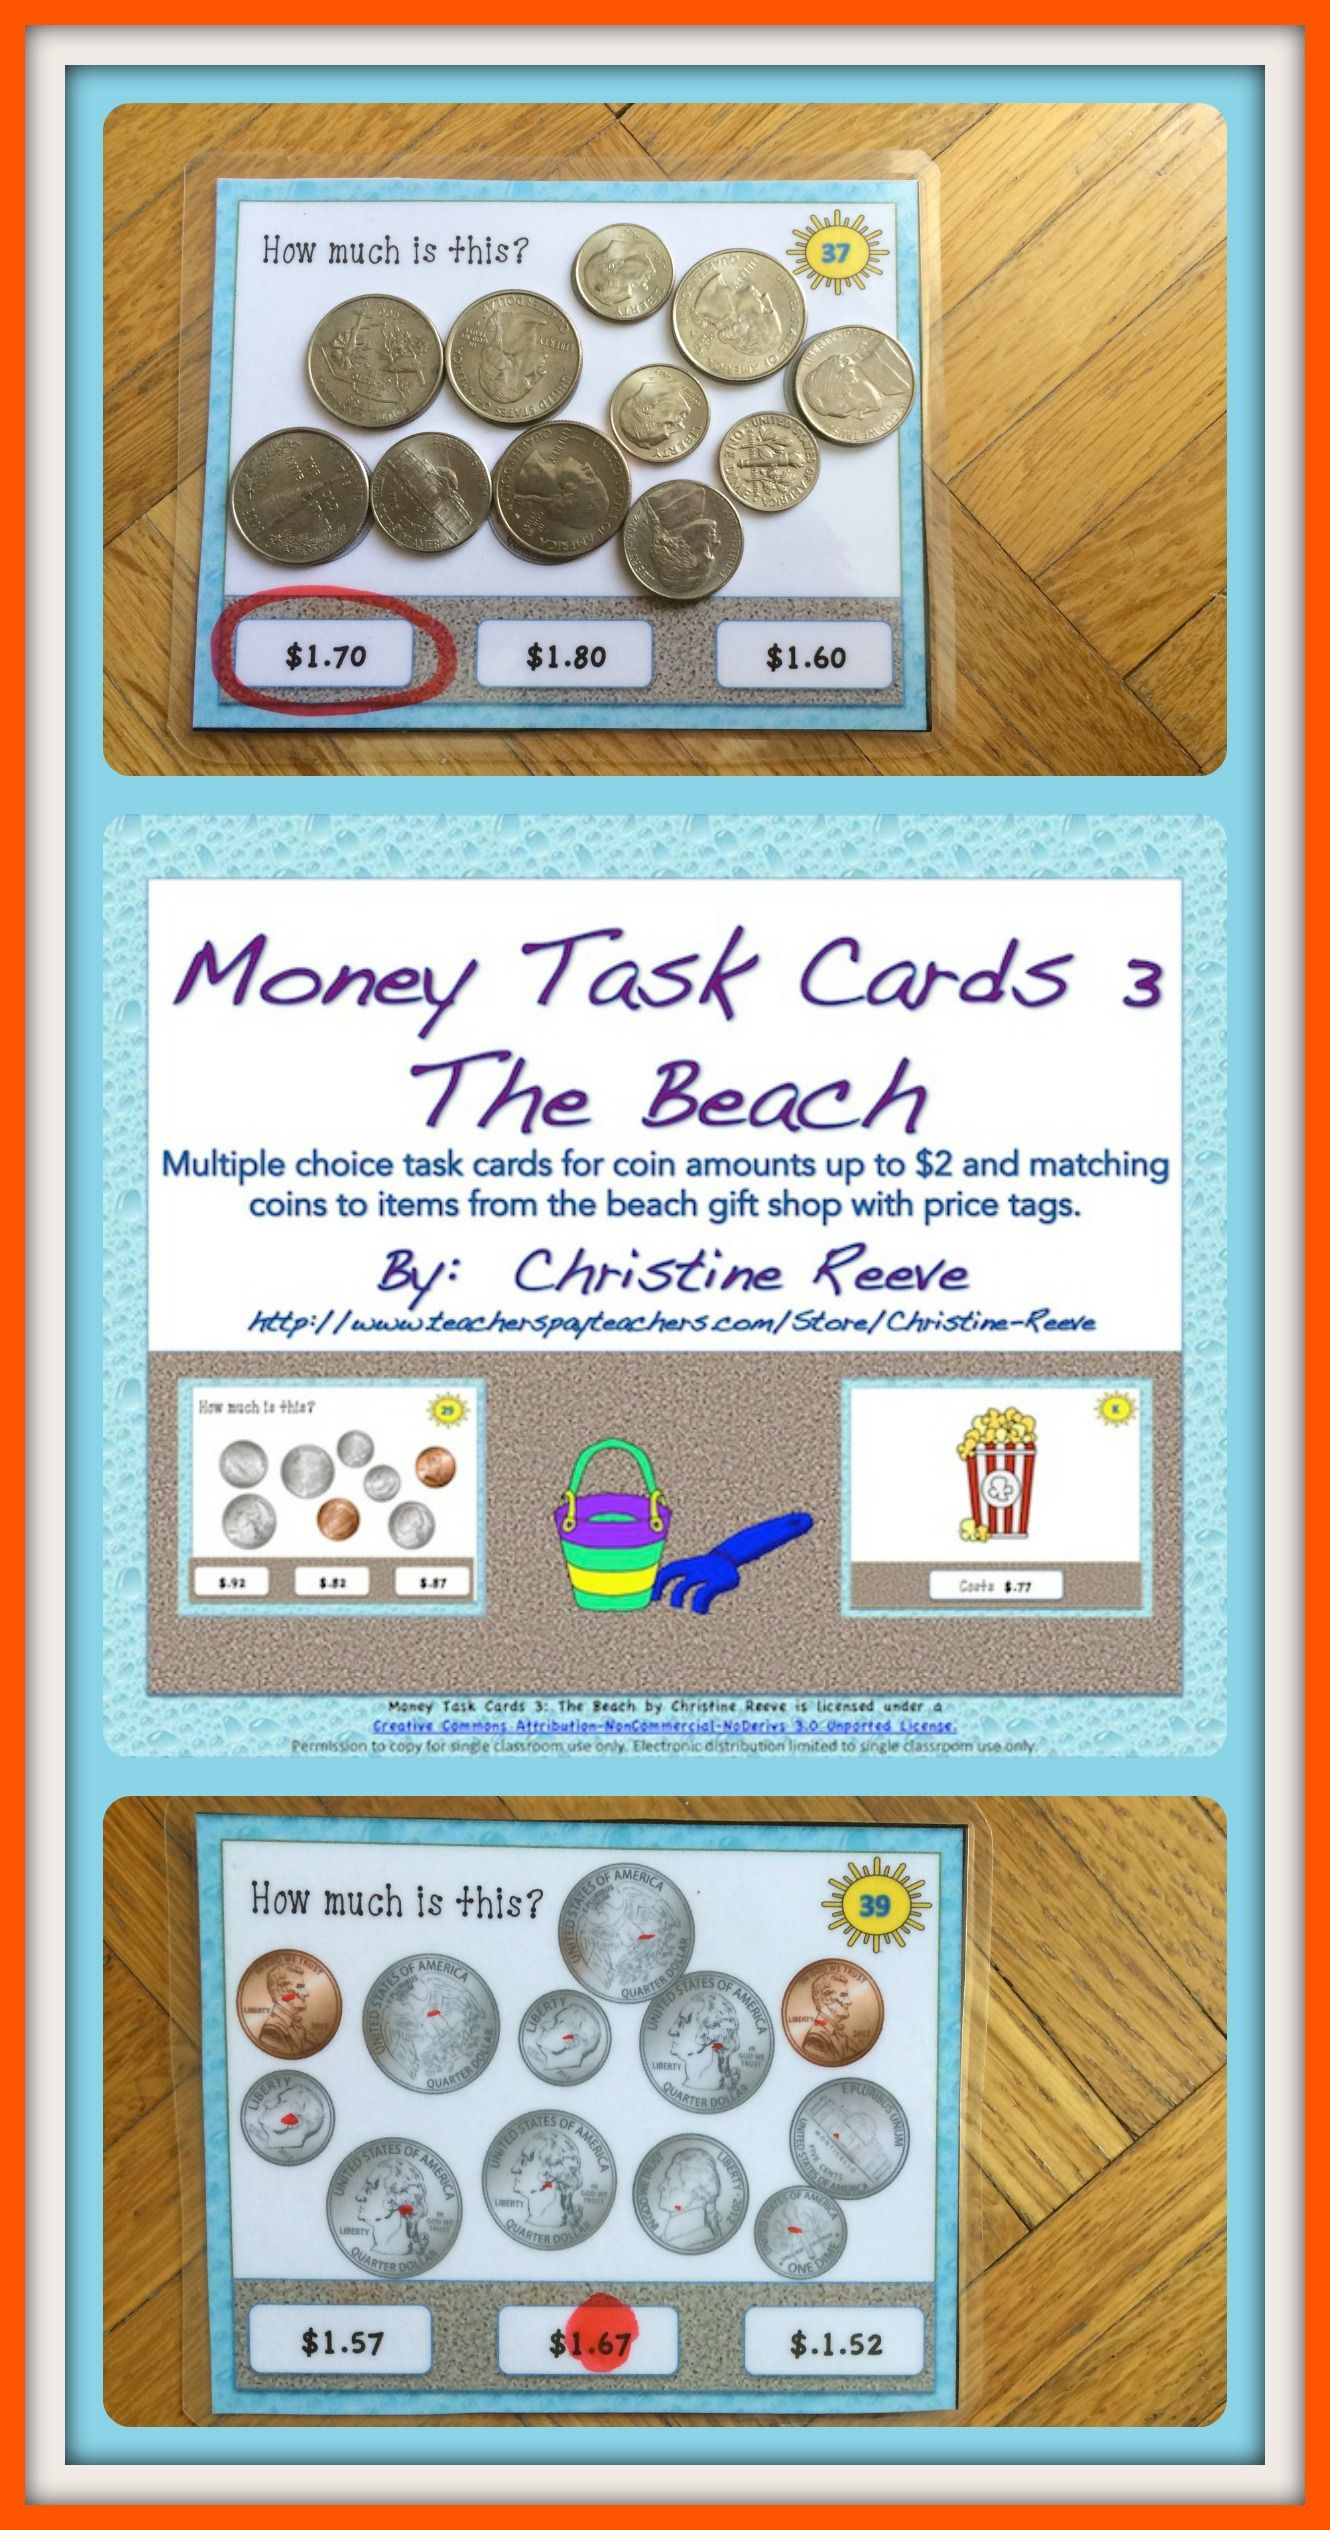 Money Task Cards 3 The Beach Coins To 2 With Distance